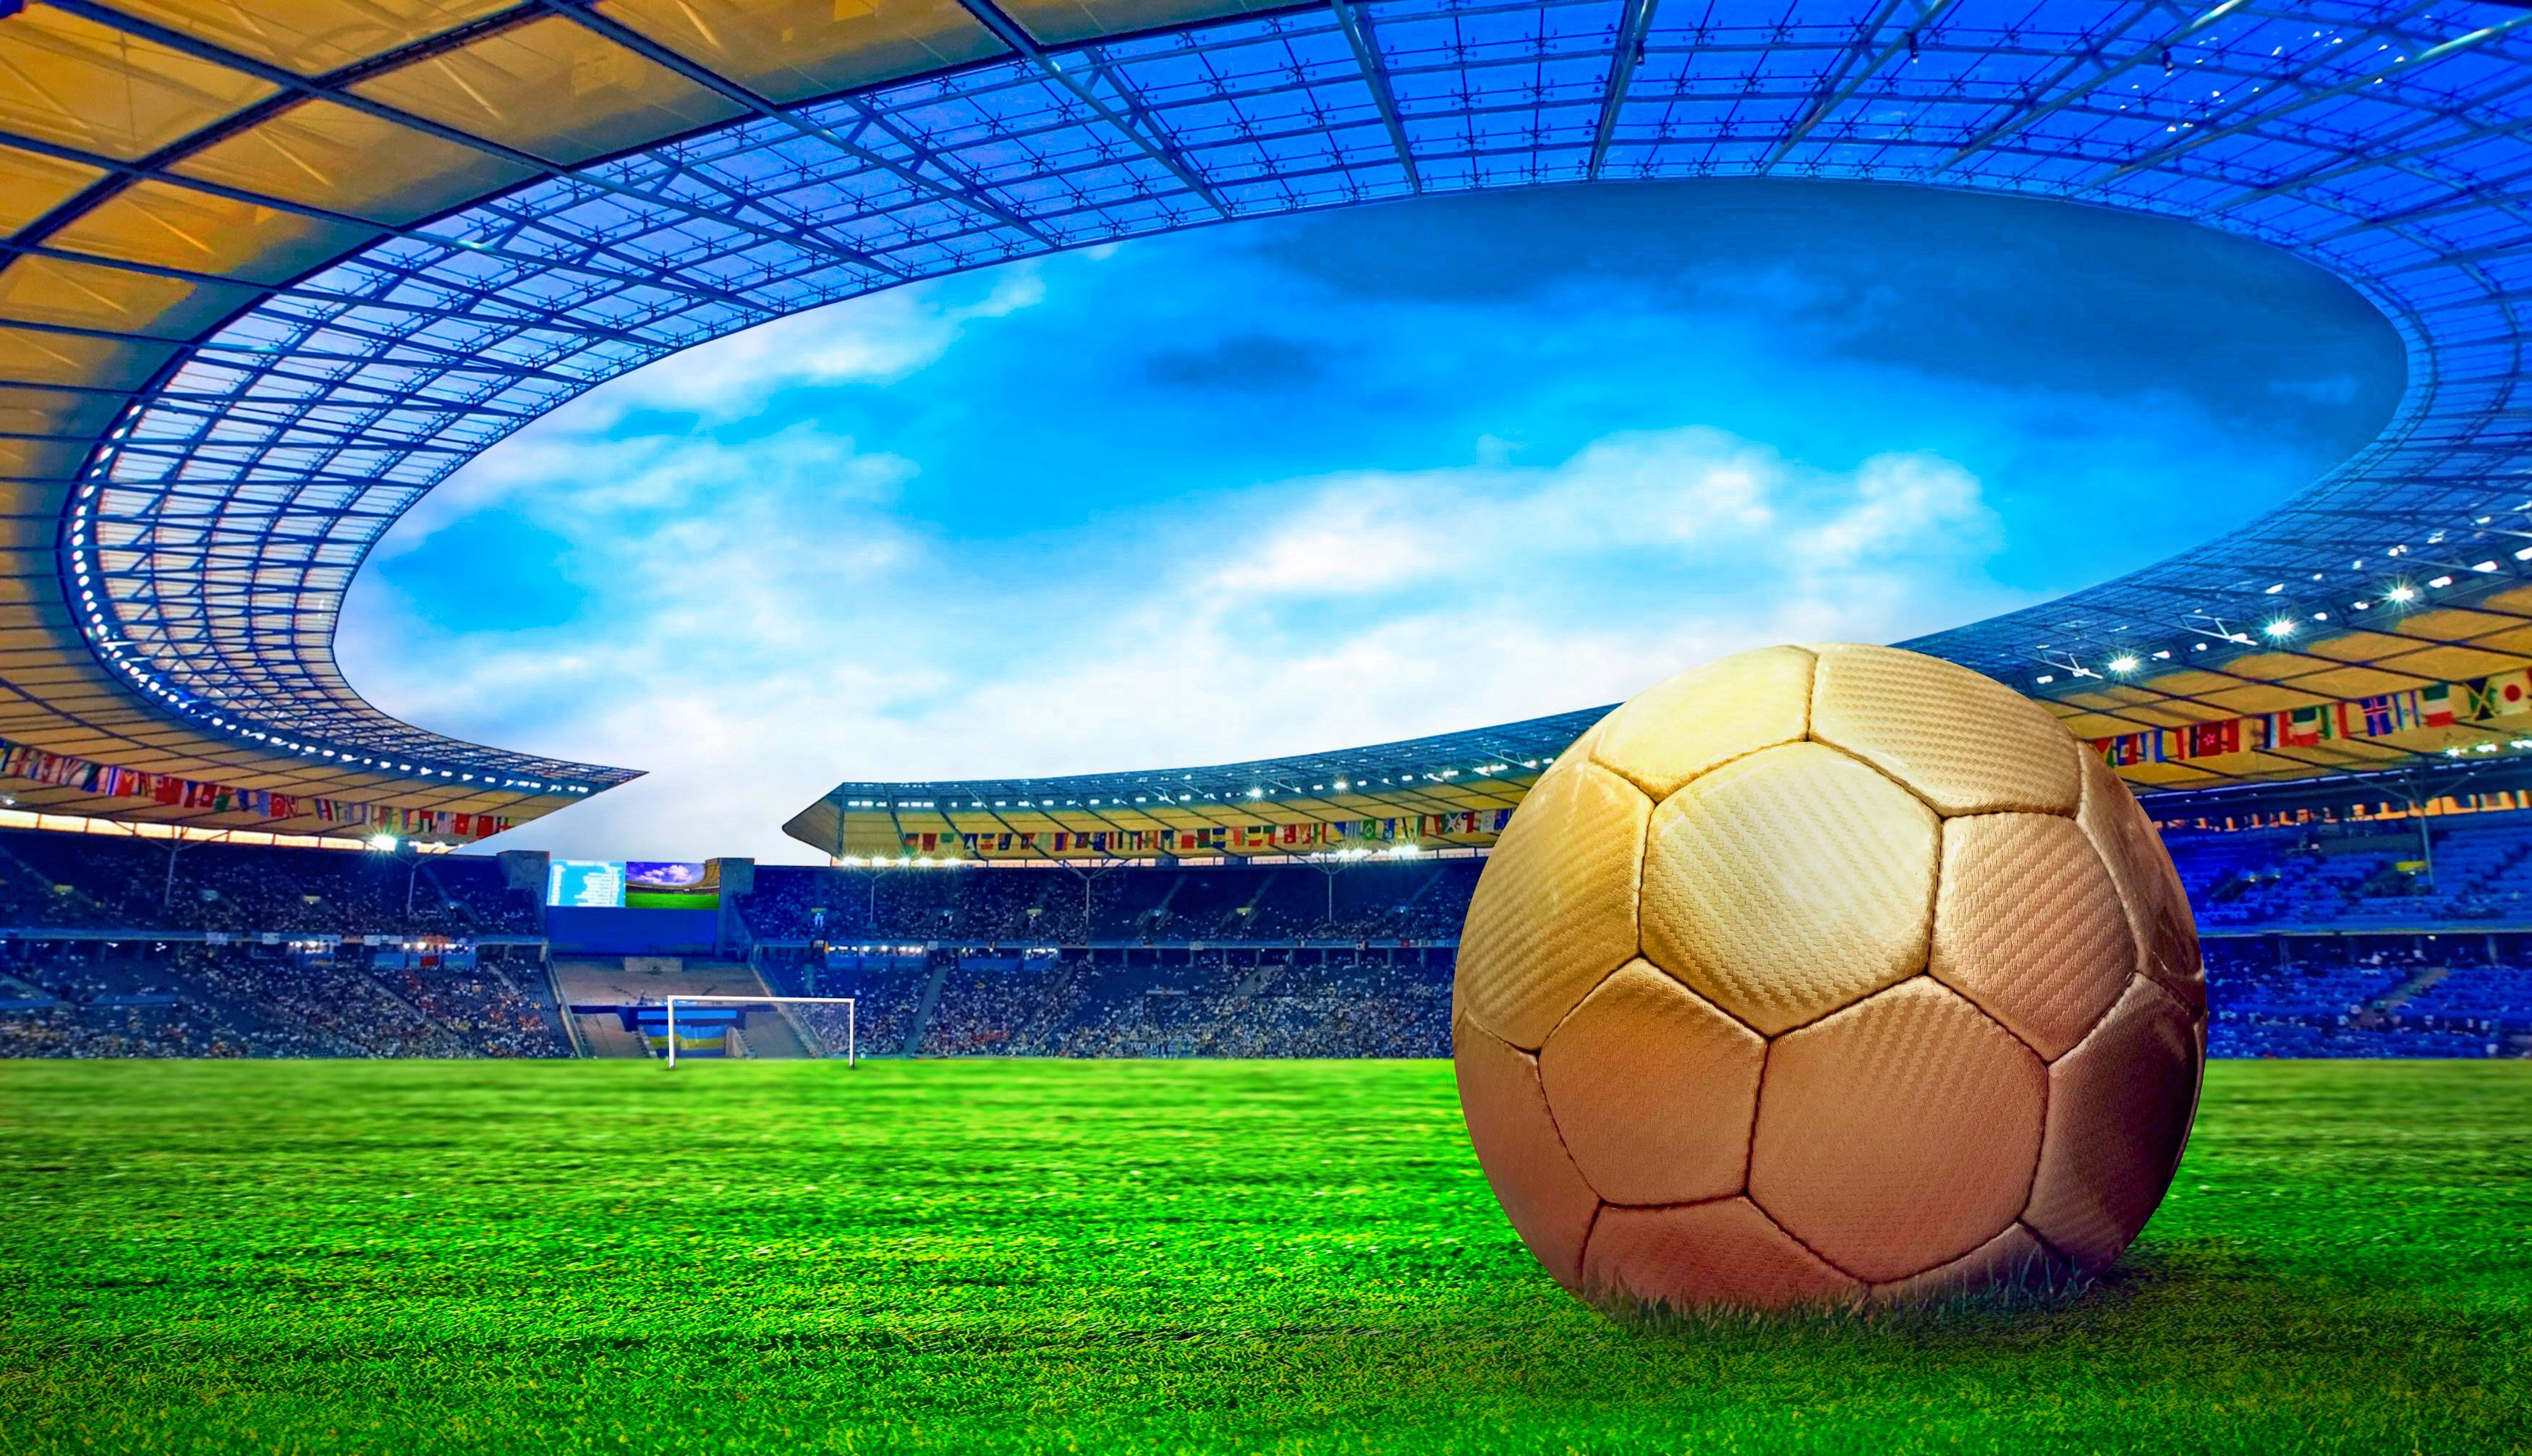 Soccer 4k Wallpapers Top Free Soccer 4k Backgrounds